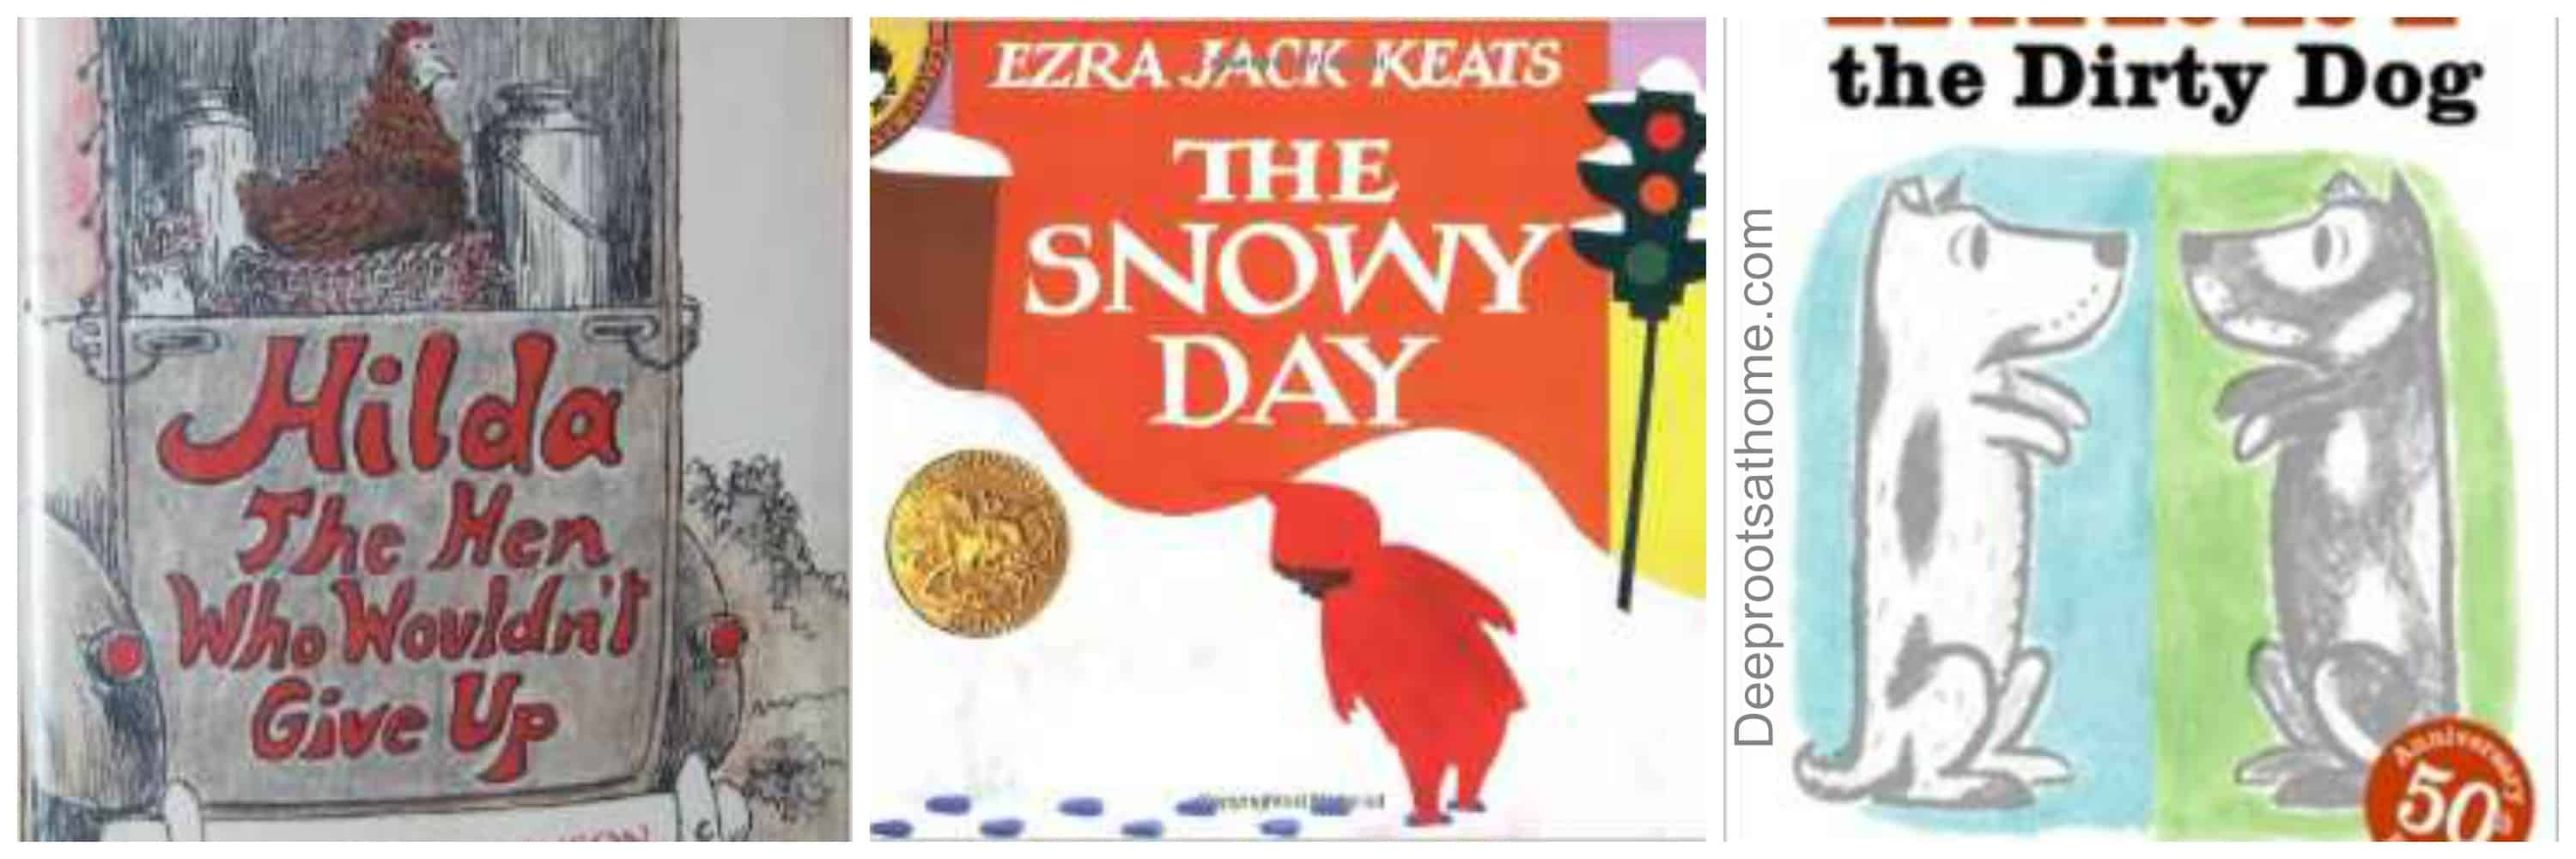 3 books: Hilda the Hen Who wouldn't give Up, The Snowy Day by Ezra Jack Keats, and Harry the Dirty Dog.